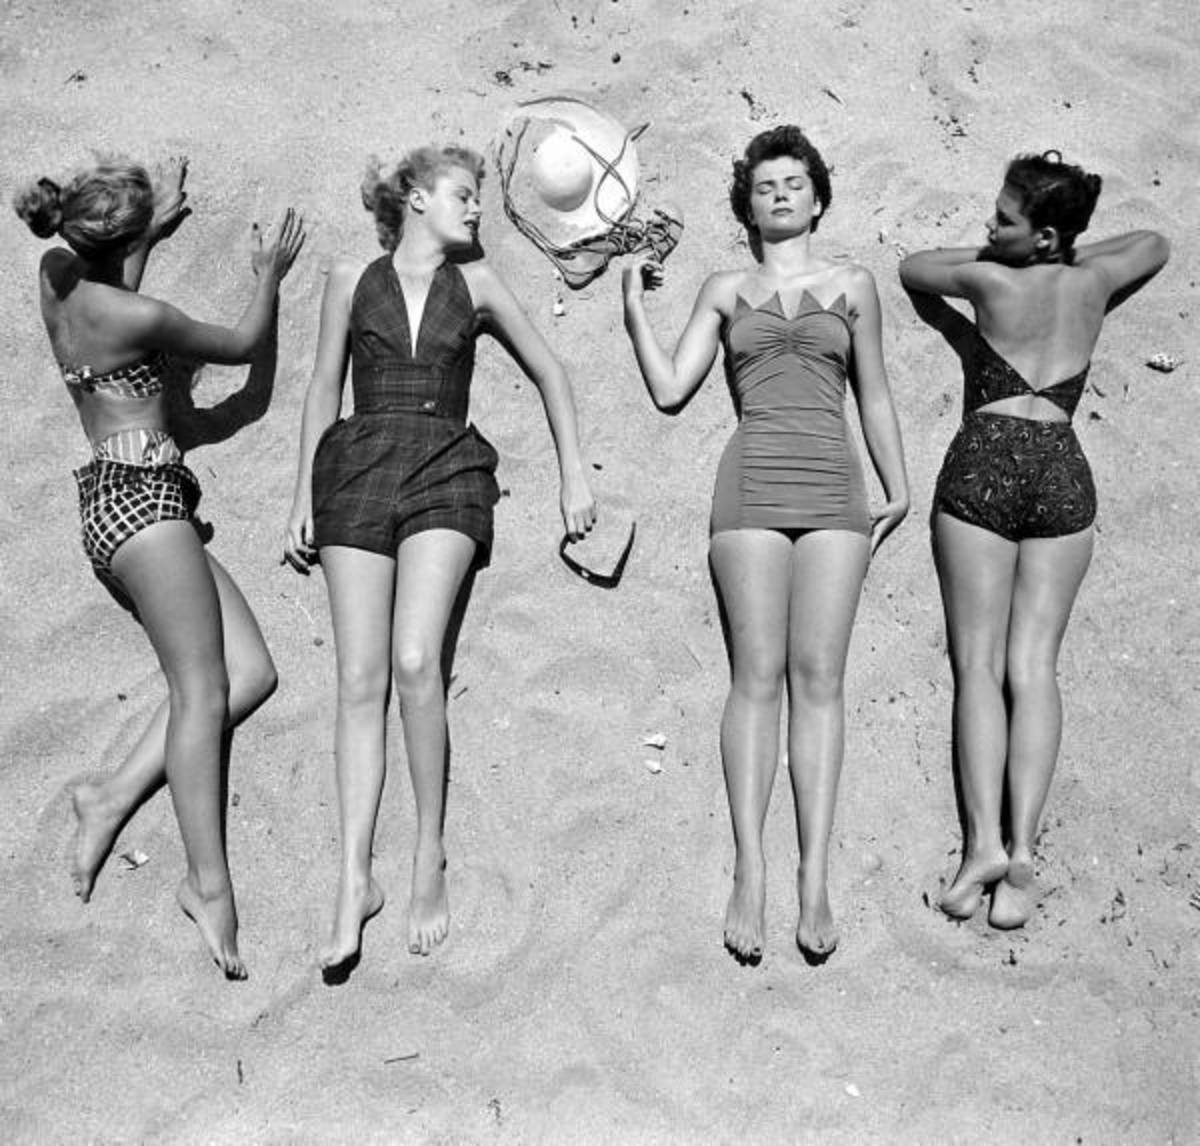 12fdddf7cce49 Vintage Bathing Suits | HubPages